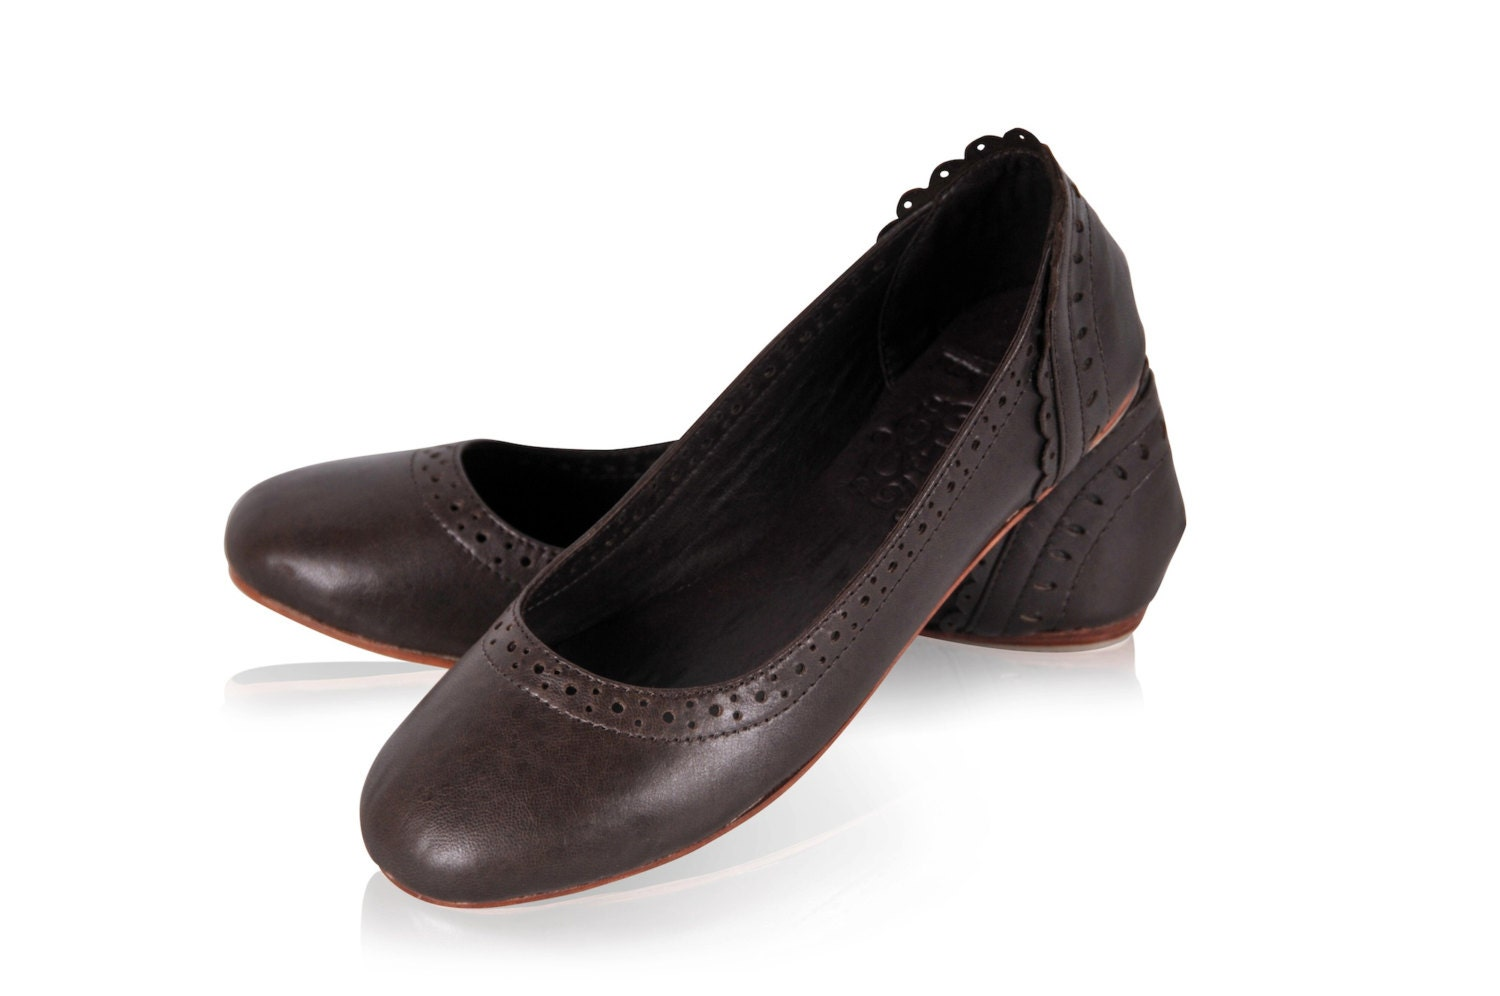 Dark Flats Shoes